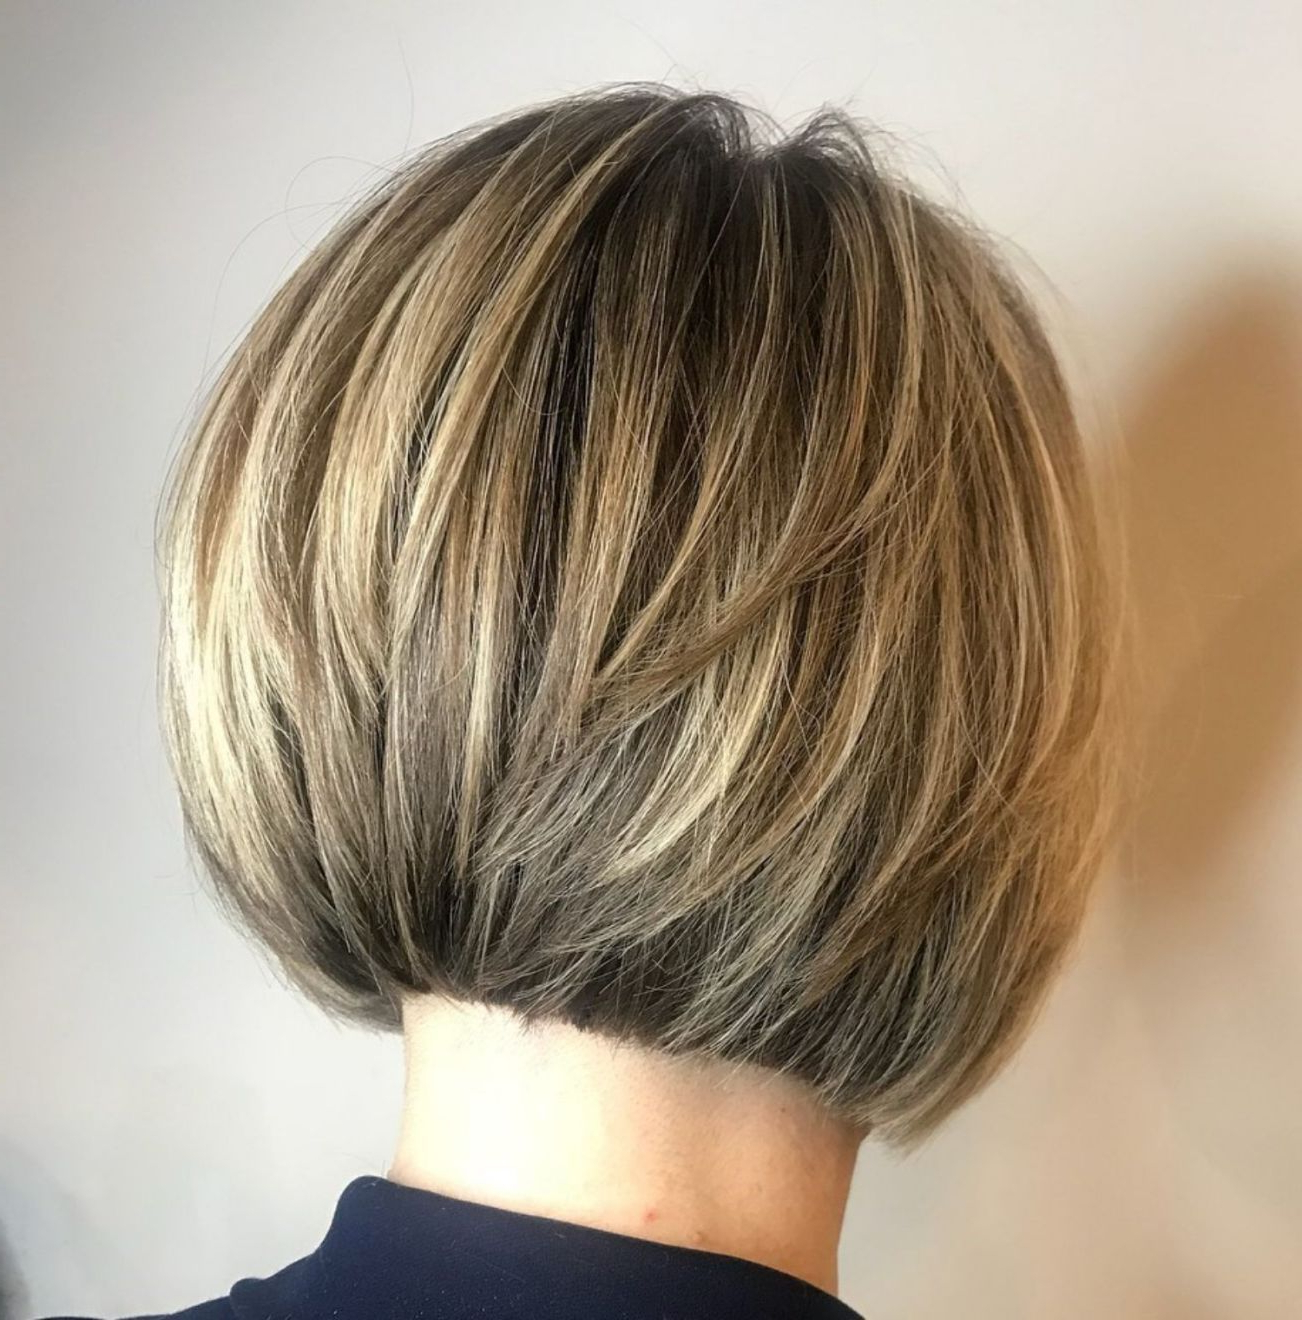 60 Layered Bob Styles: Modern Haircuts With Layers For Any In Dynamic Tousled Blonde Bob Hairstyles With Dark Underlayer (View 8 of 20)